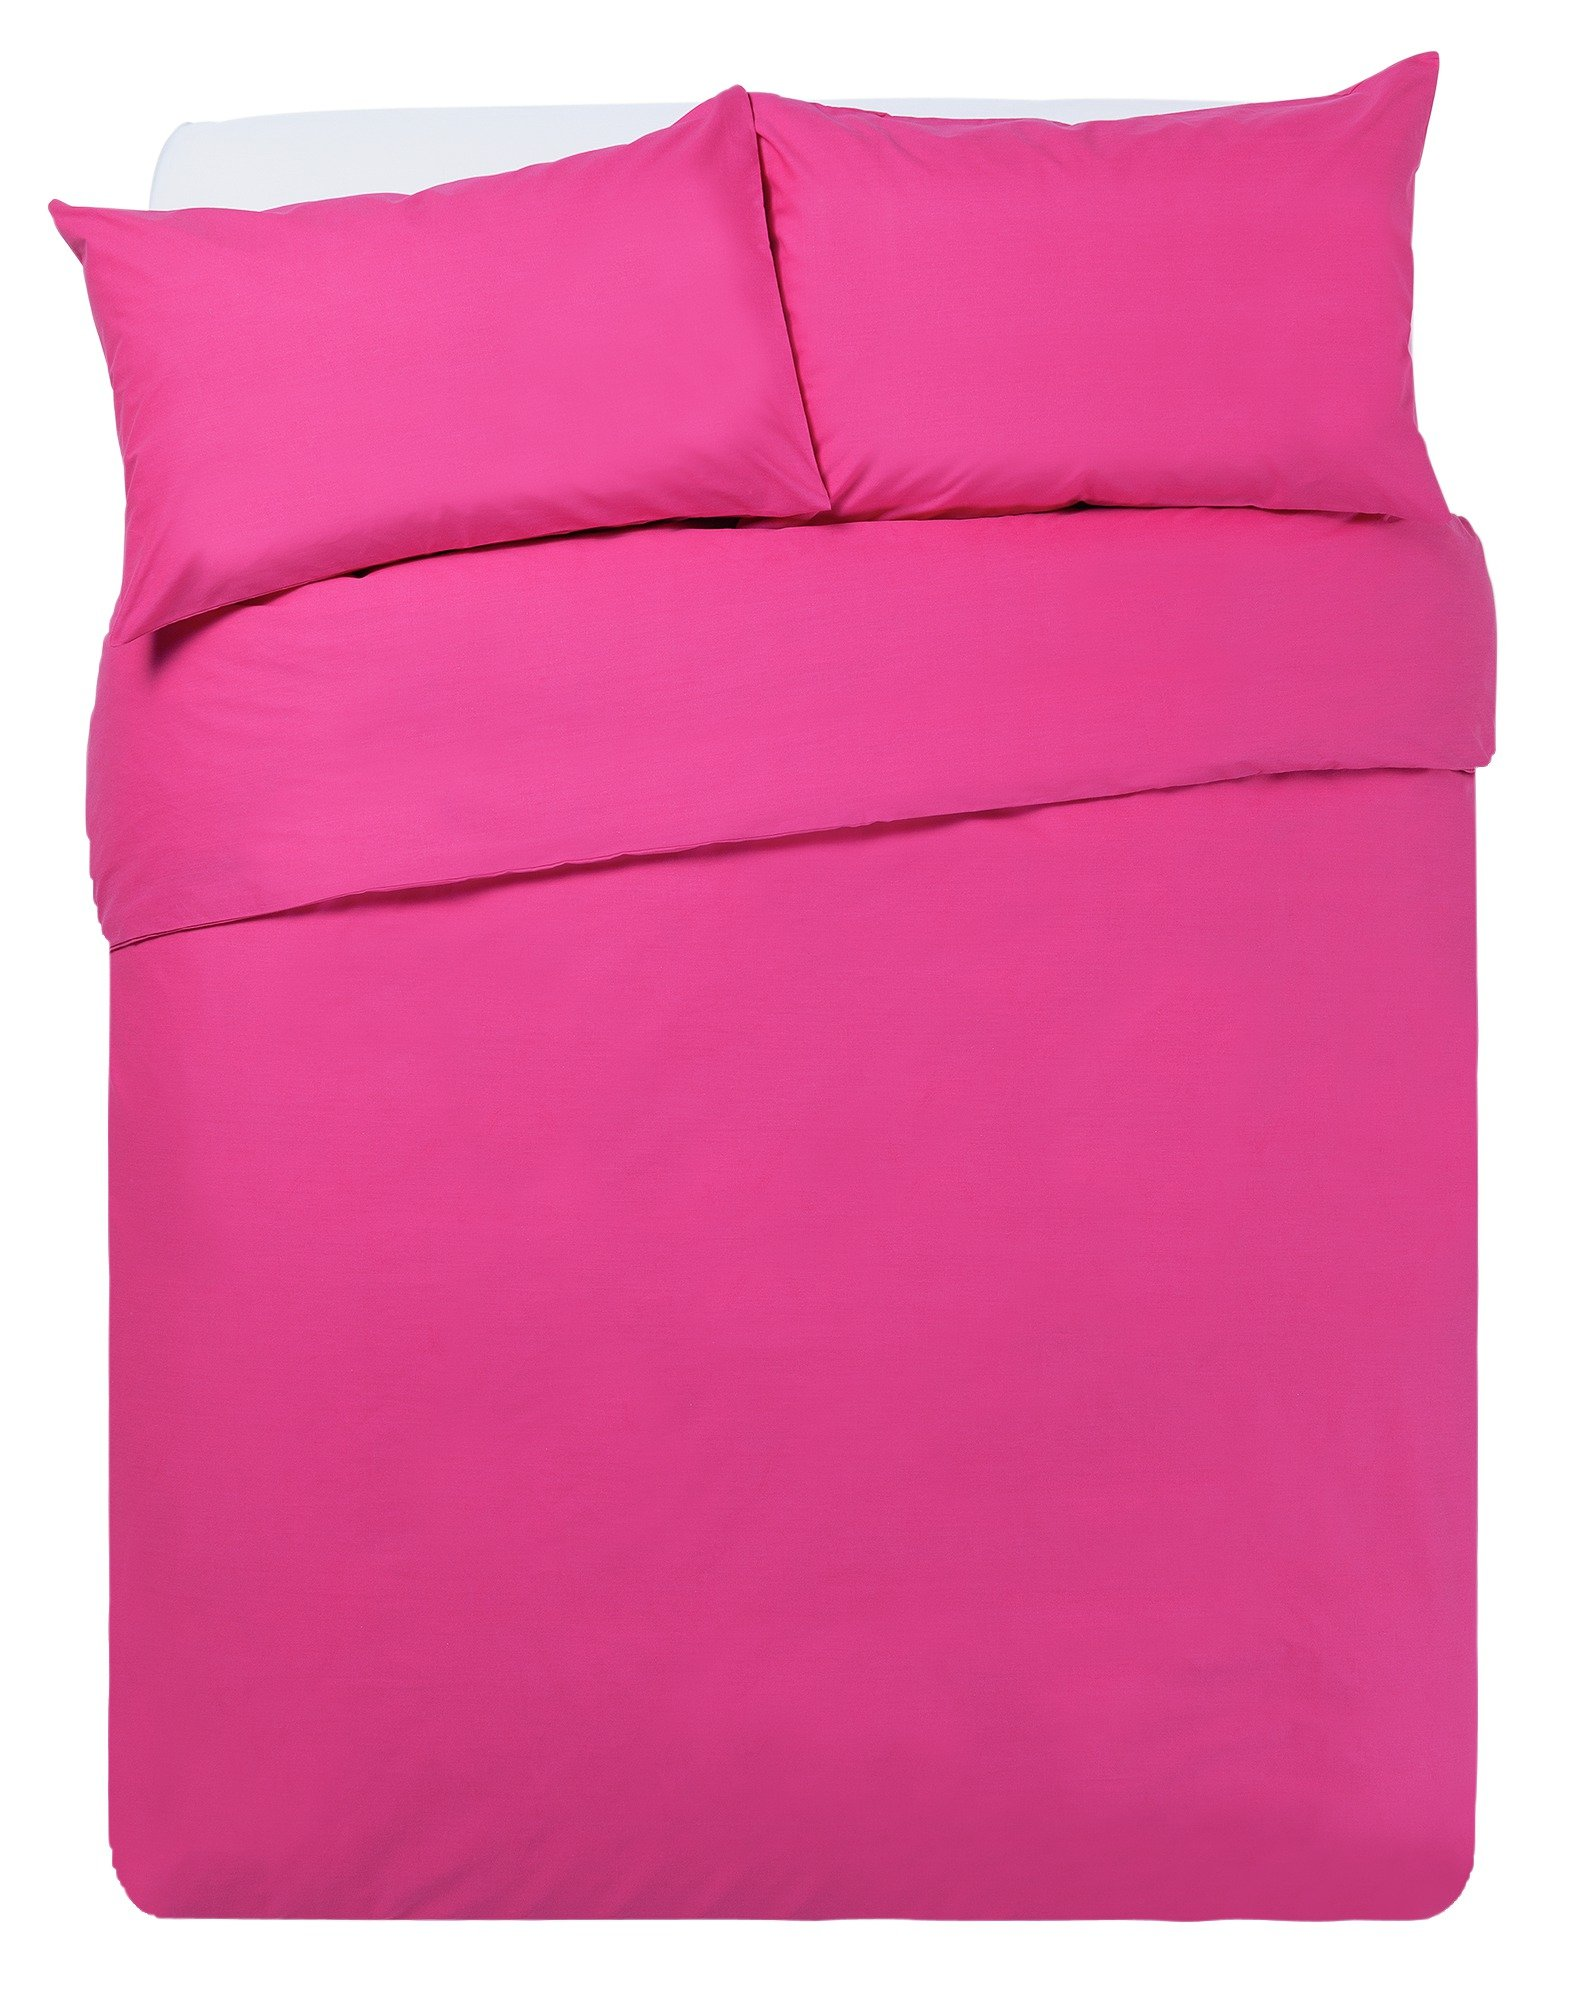 ColourMatch Funky Fuchsia Bedding Set - Double